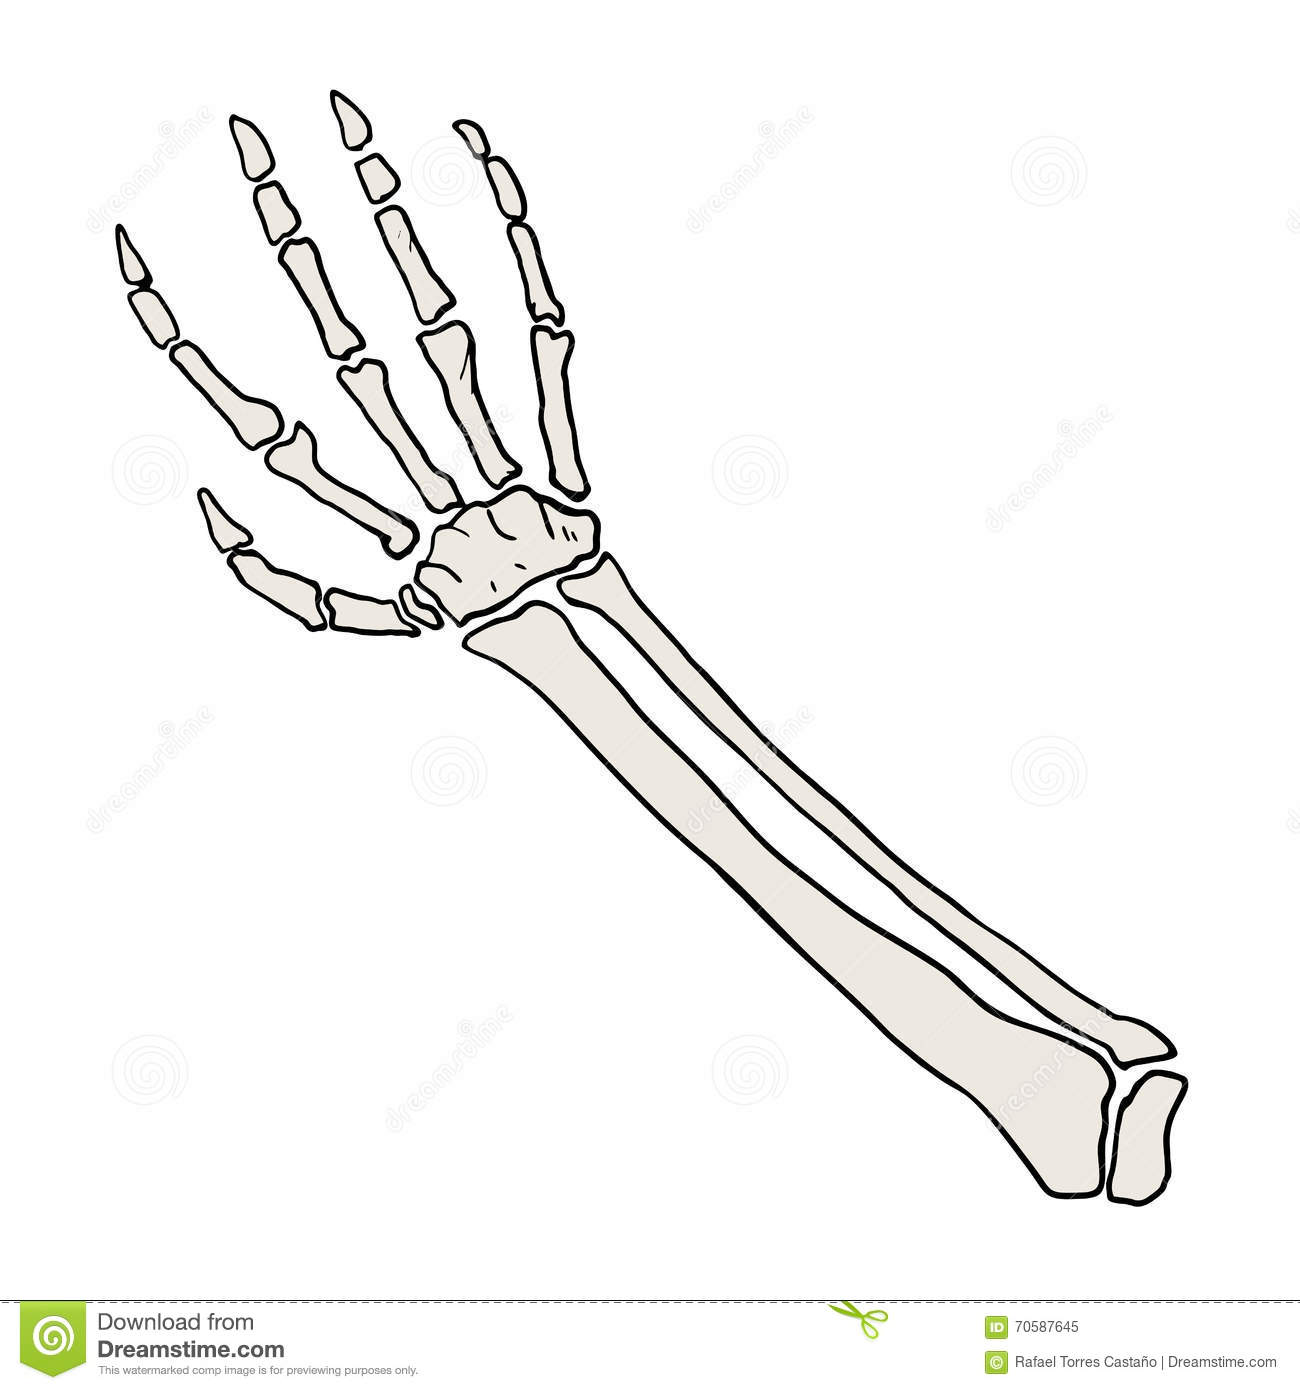 Humerus Arm Anatomy